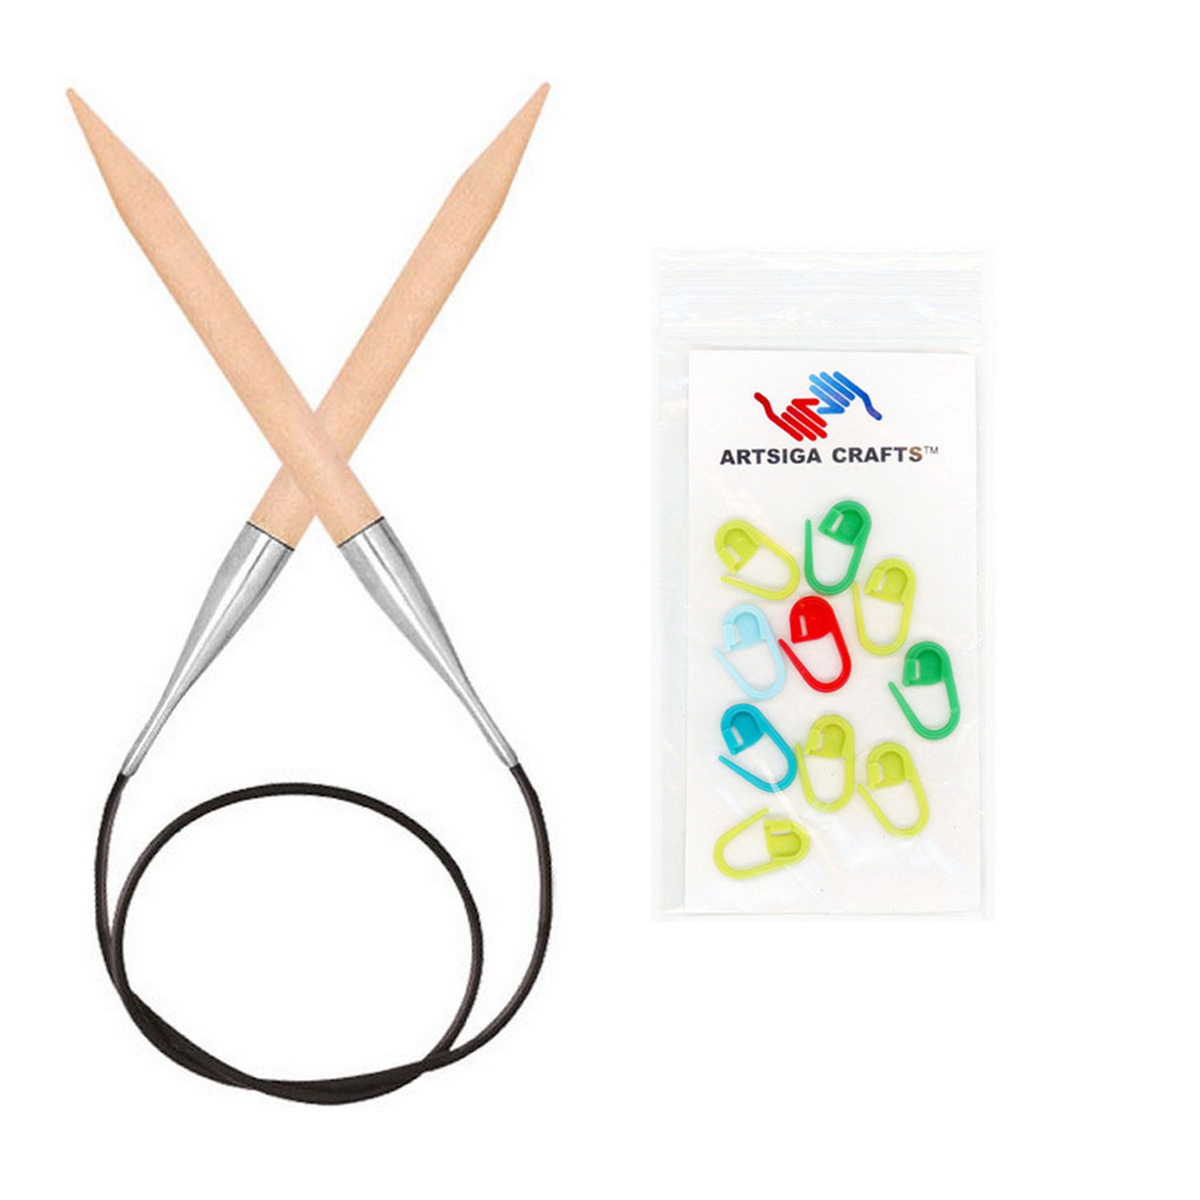 Knitter's Pride Basix Circular 16-inch (40cm) Knitting Needles Bundle with 10 Artsiga Crafts Stitch Markers